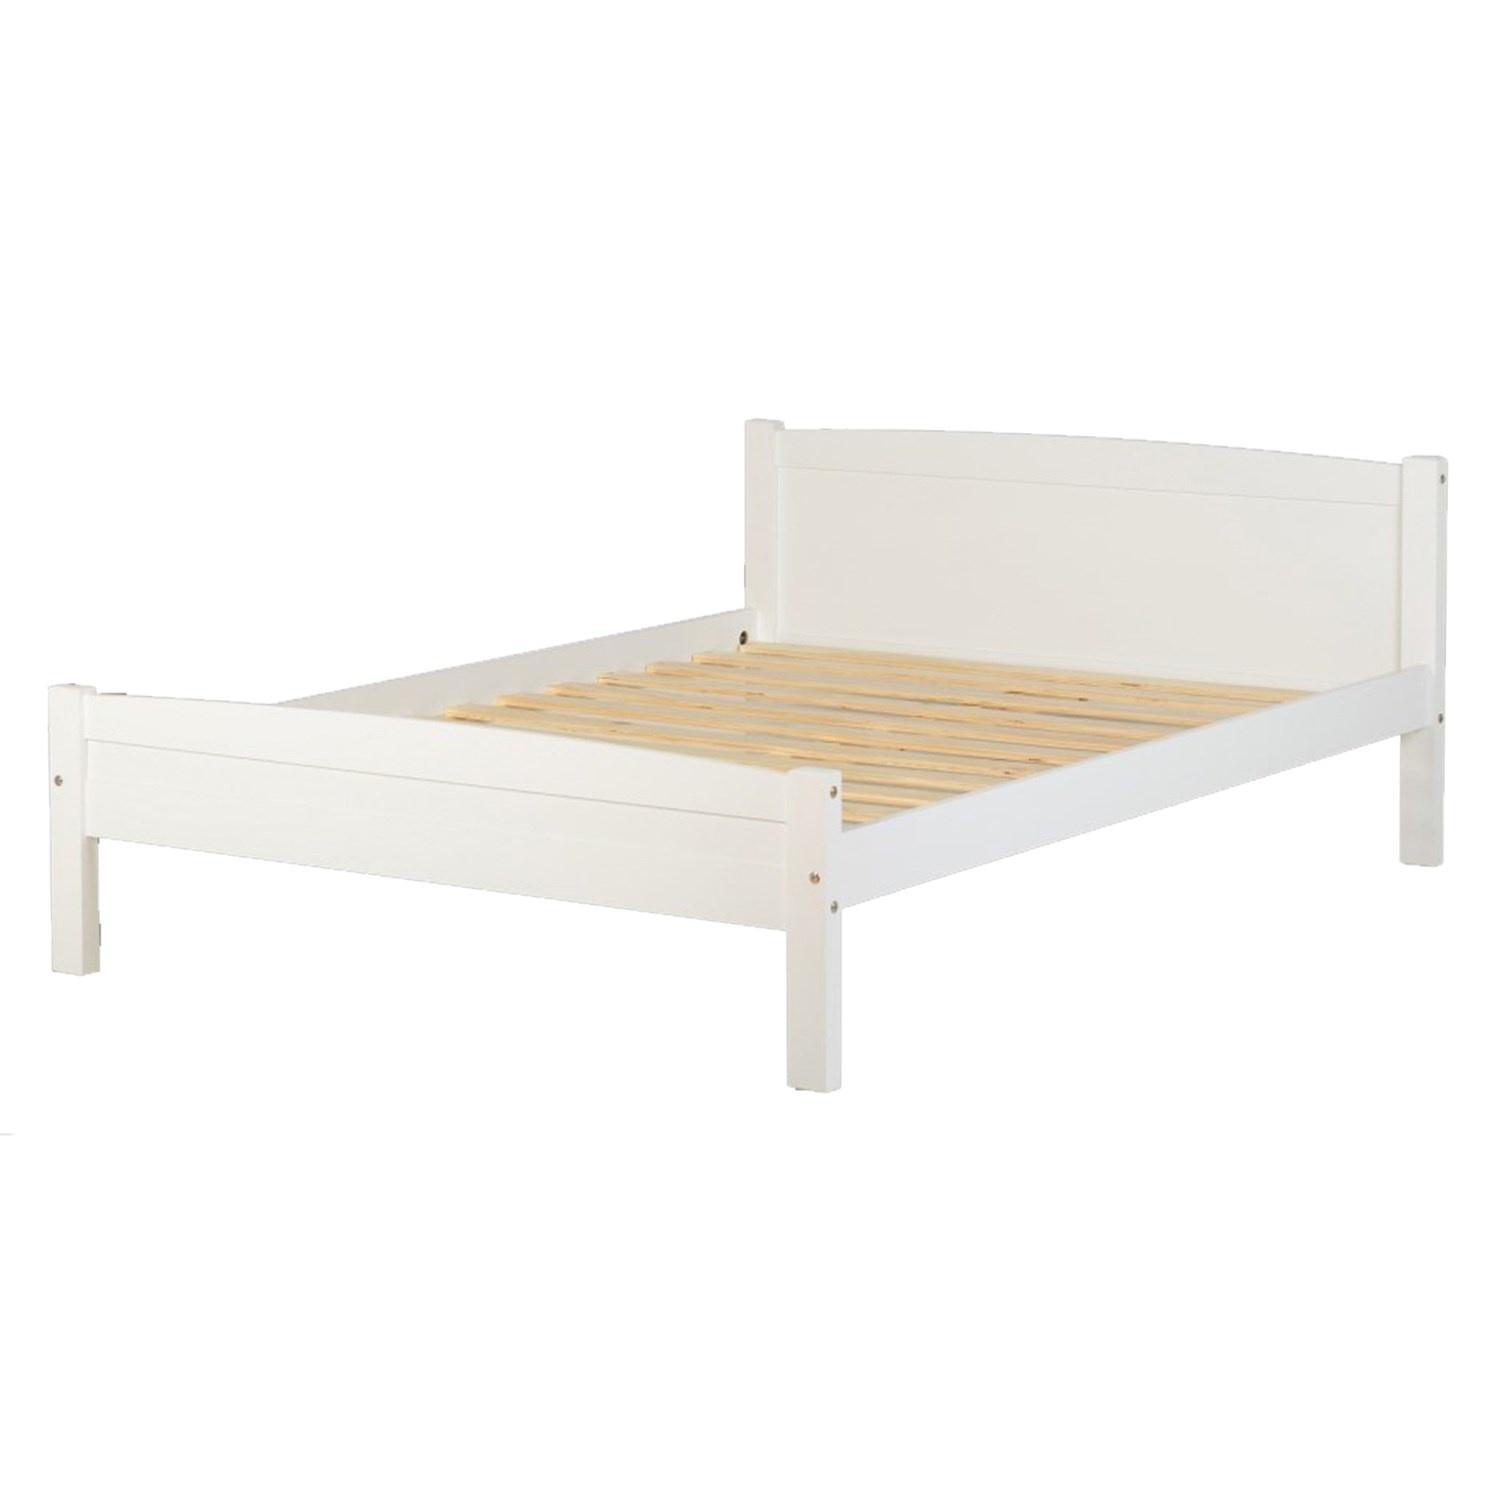 Seconique Amber Double Bed - White